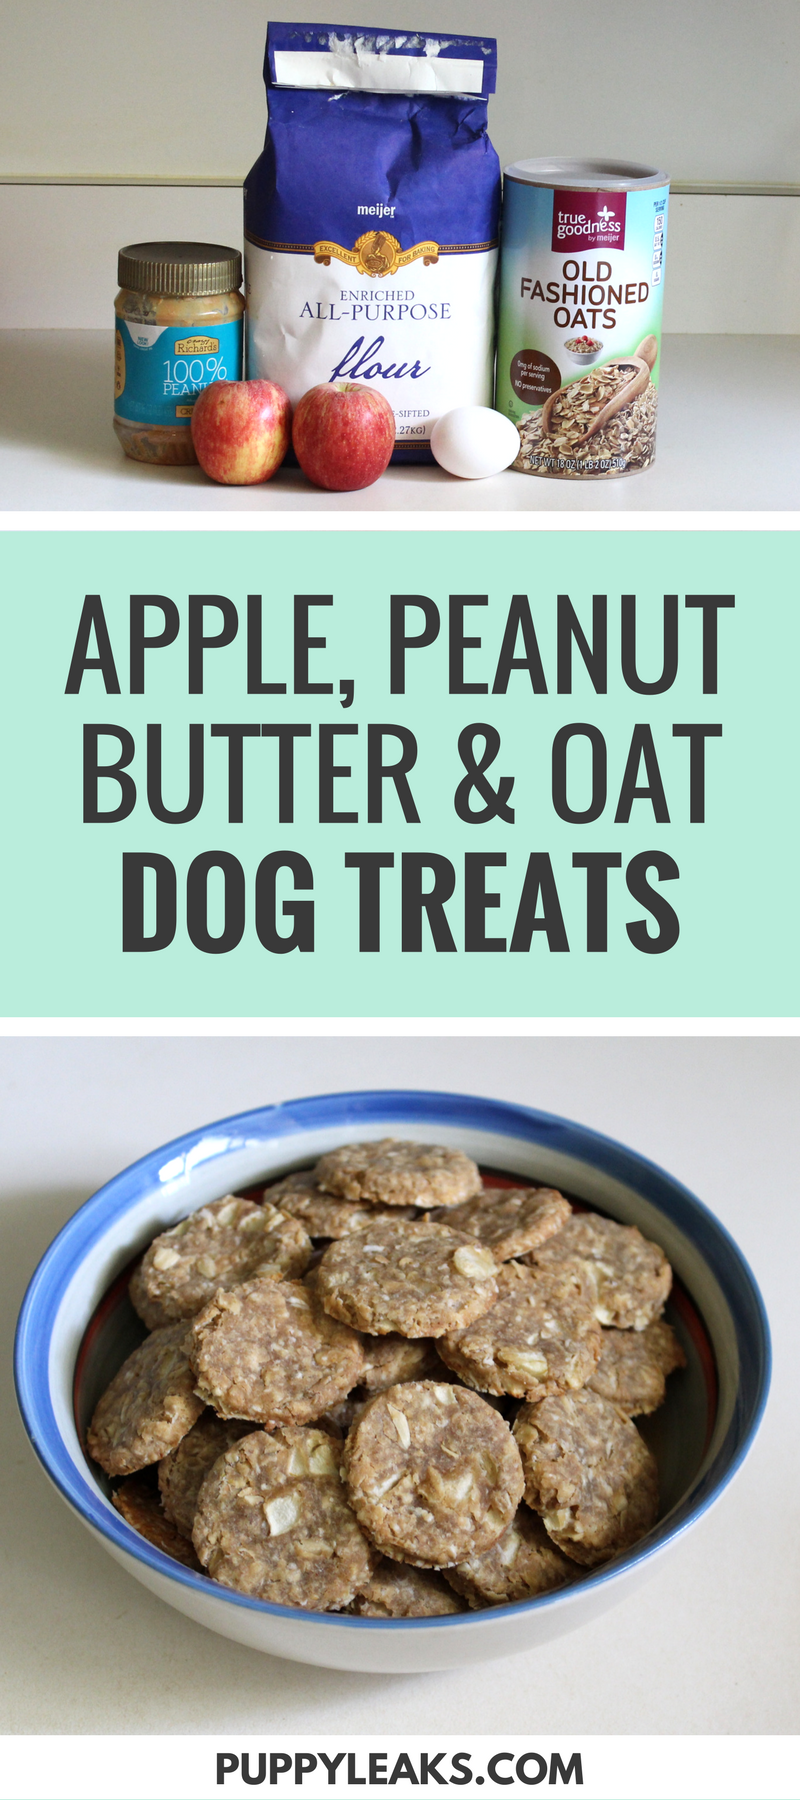 Apple Peanut Butter & Oat Dog Treats